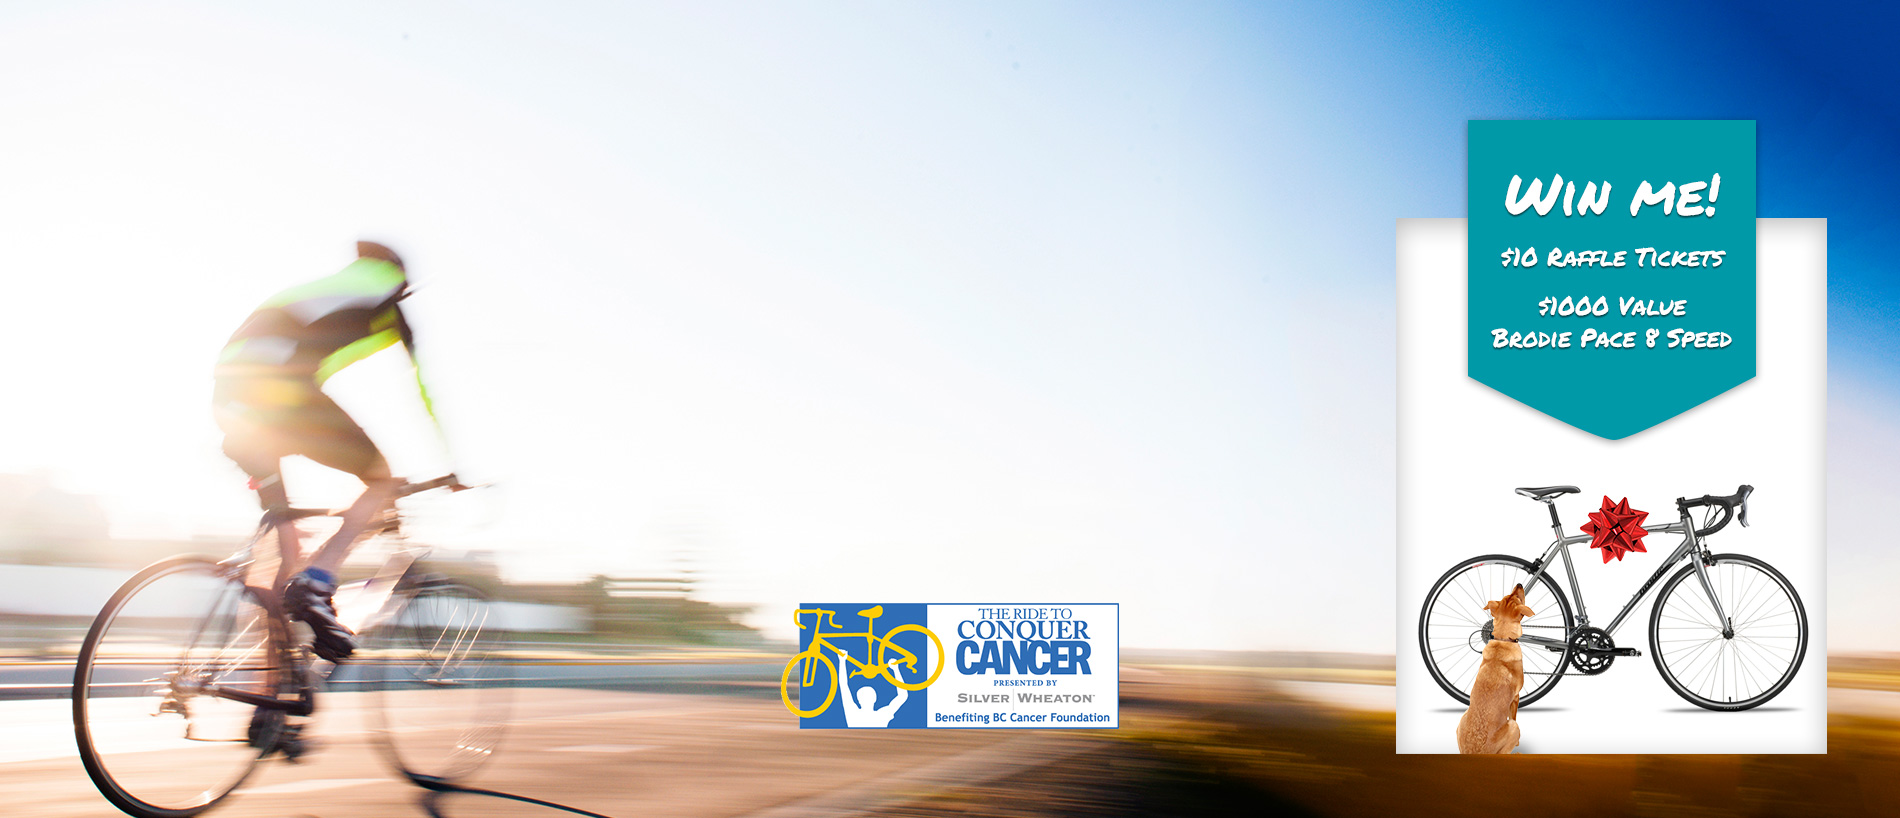 Ride to Conquer Cancer Bake Sale!